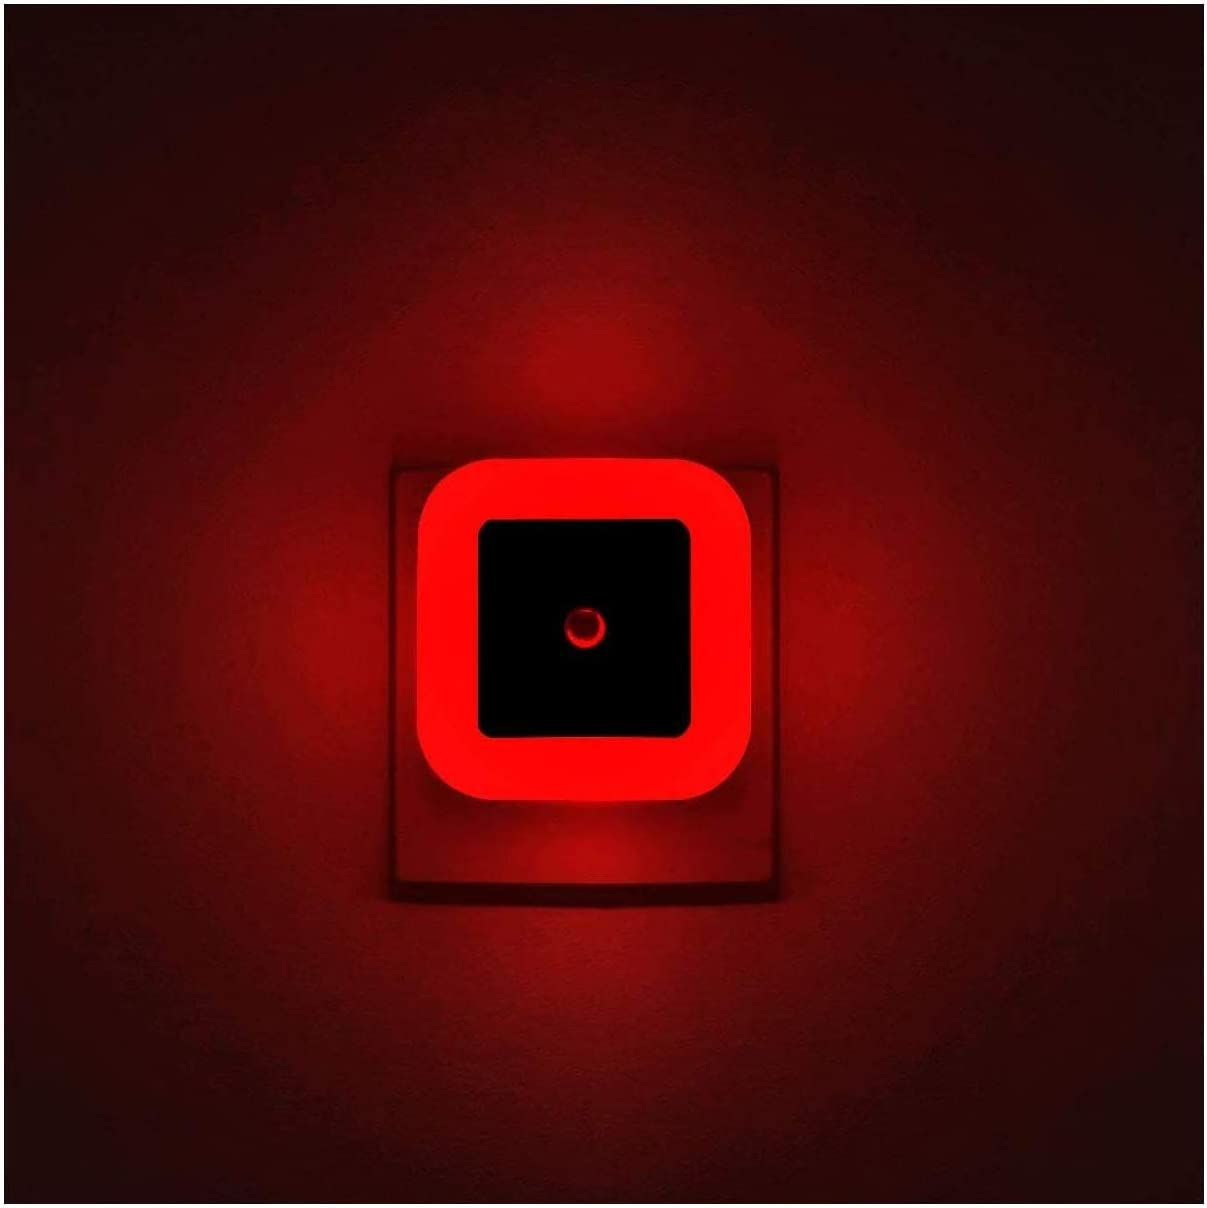 Pack Of 4 Red Night Light Plug In Led Wall Lamp With Dusk To Dawn Sensor Auto On Off Perfect For Bedroom Baby And Kid S Room Amazon Com